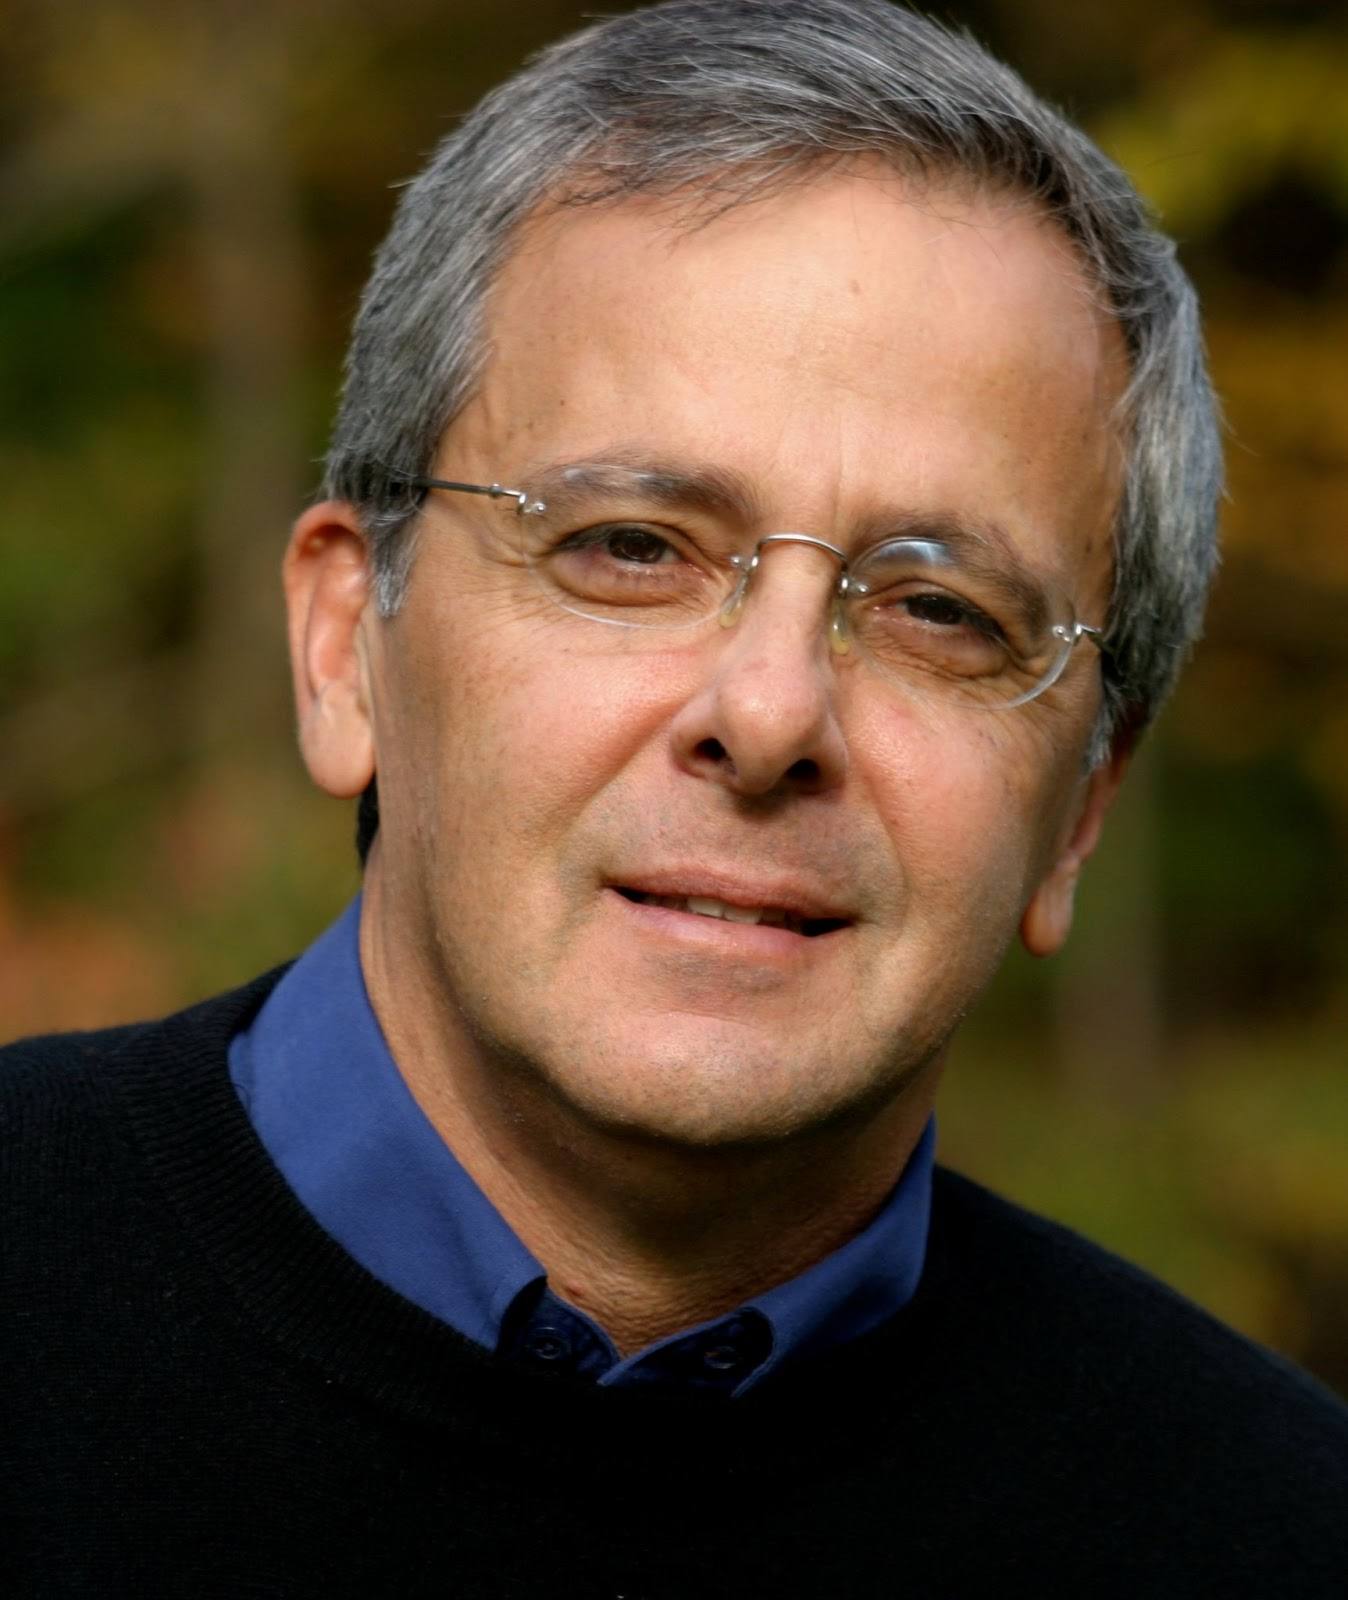 Mike Lupica Is The Author Of Multiple Bestselling Books For Young Readers  He Also Writes For New York's Daily News, Appears On Espn's The Sports  Reporters